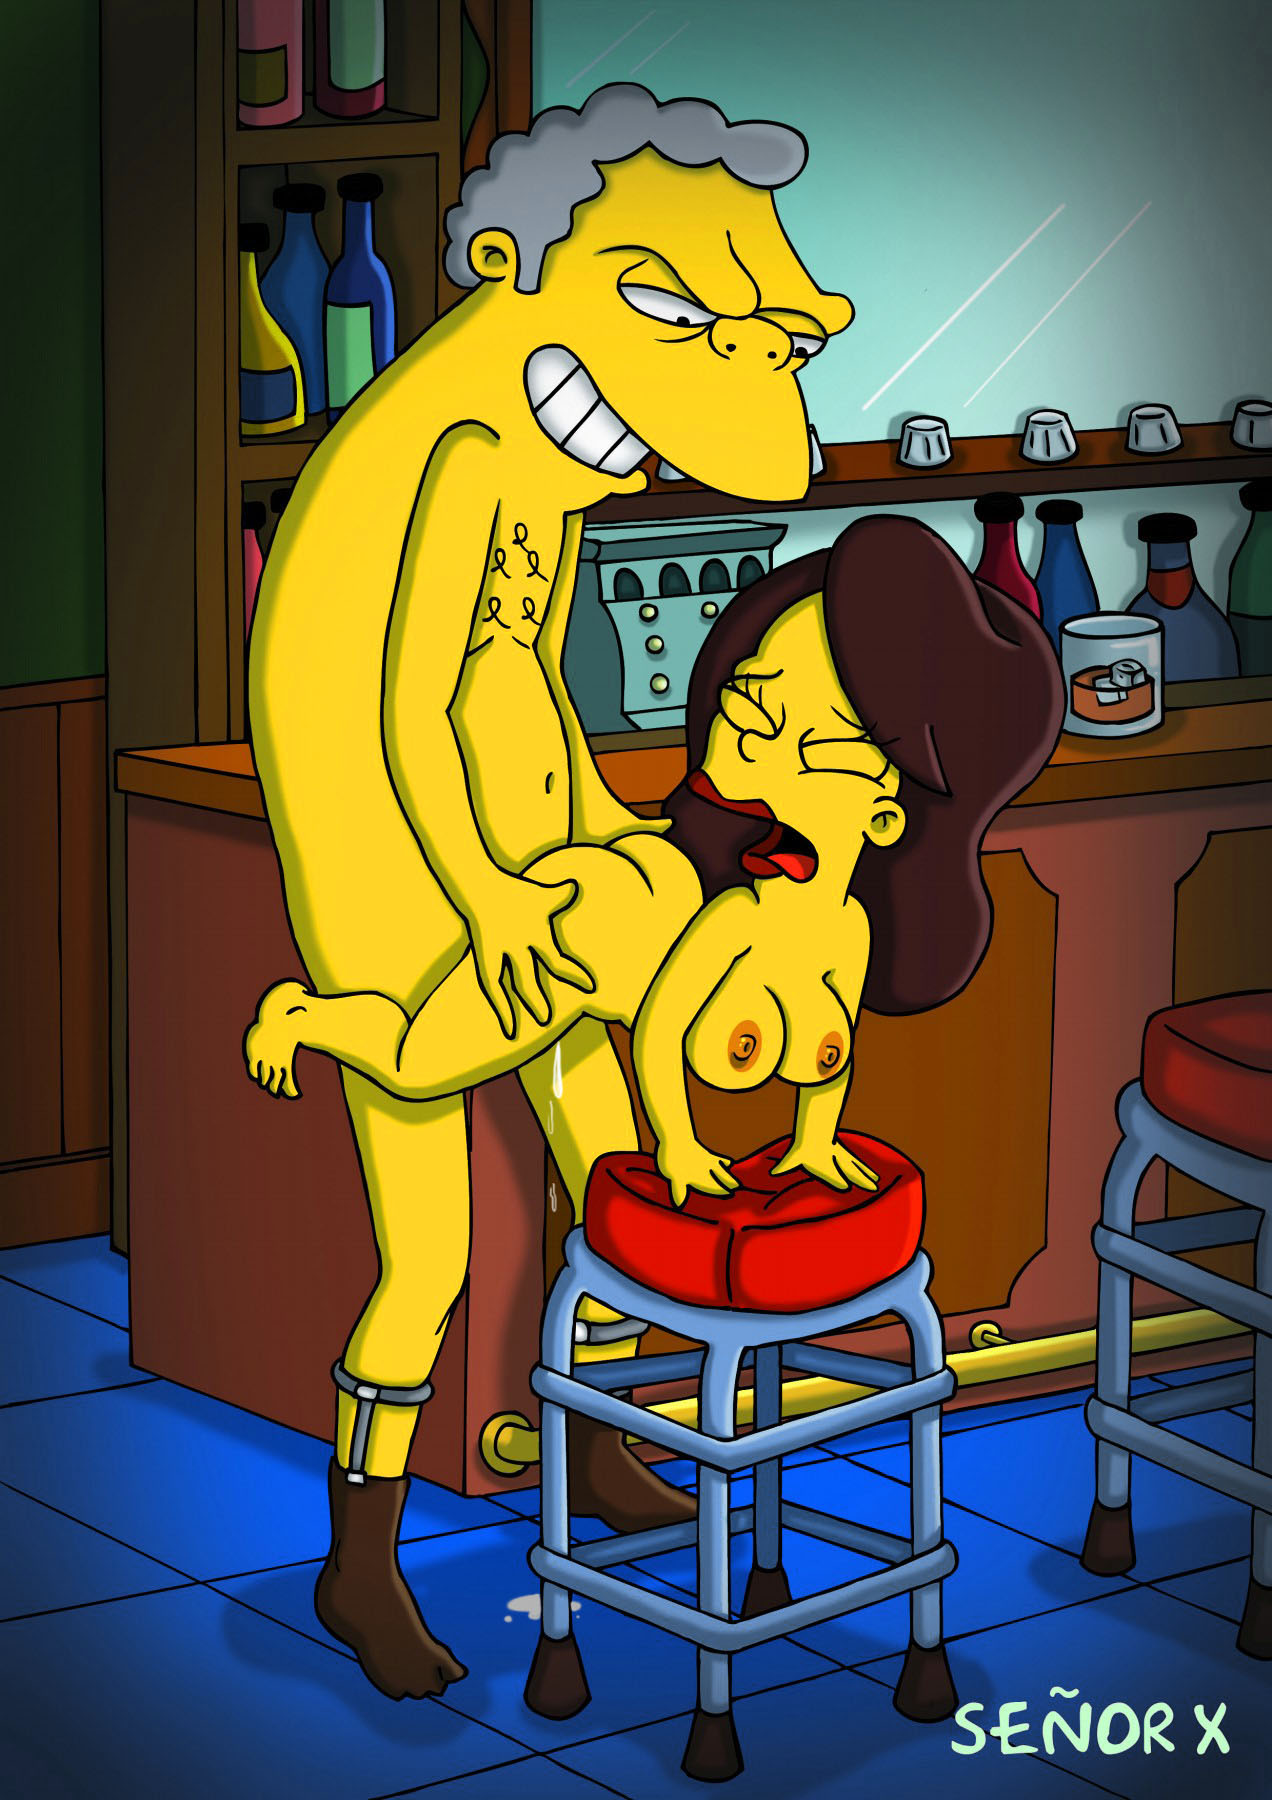 Xxx simpsons anime toonsex simpsons porn nude simpsons cartoons